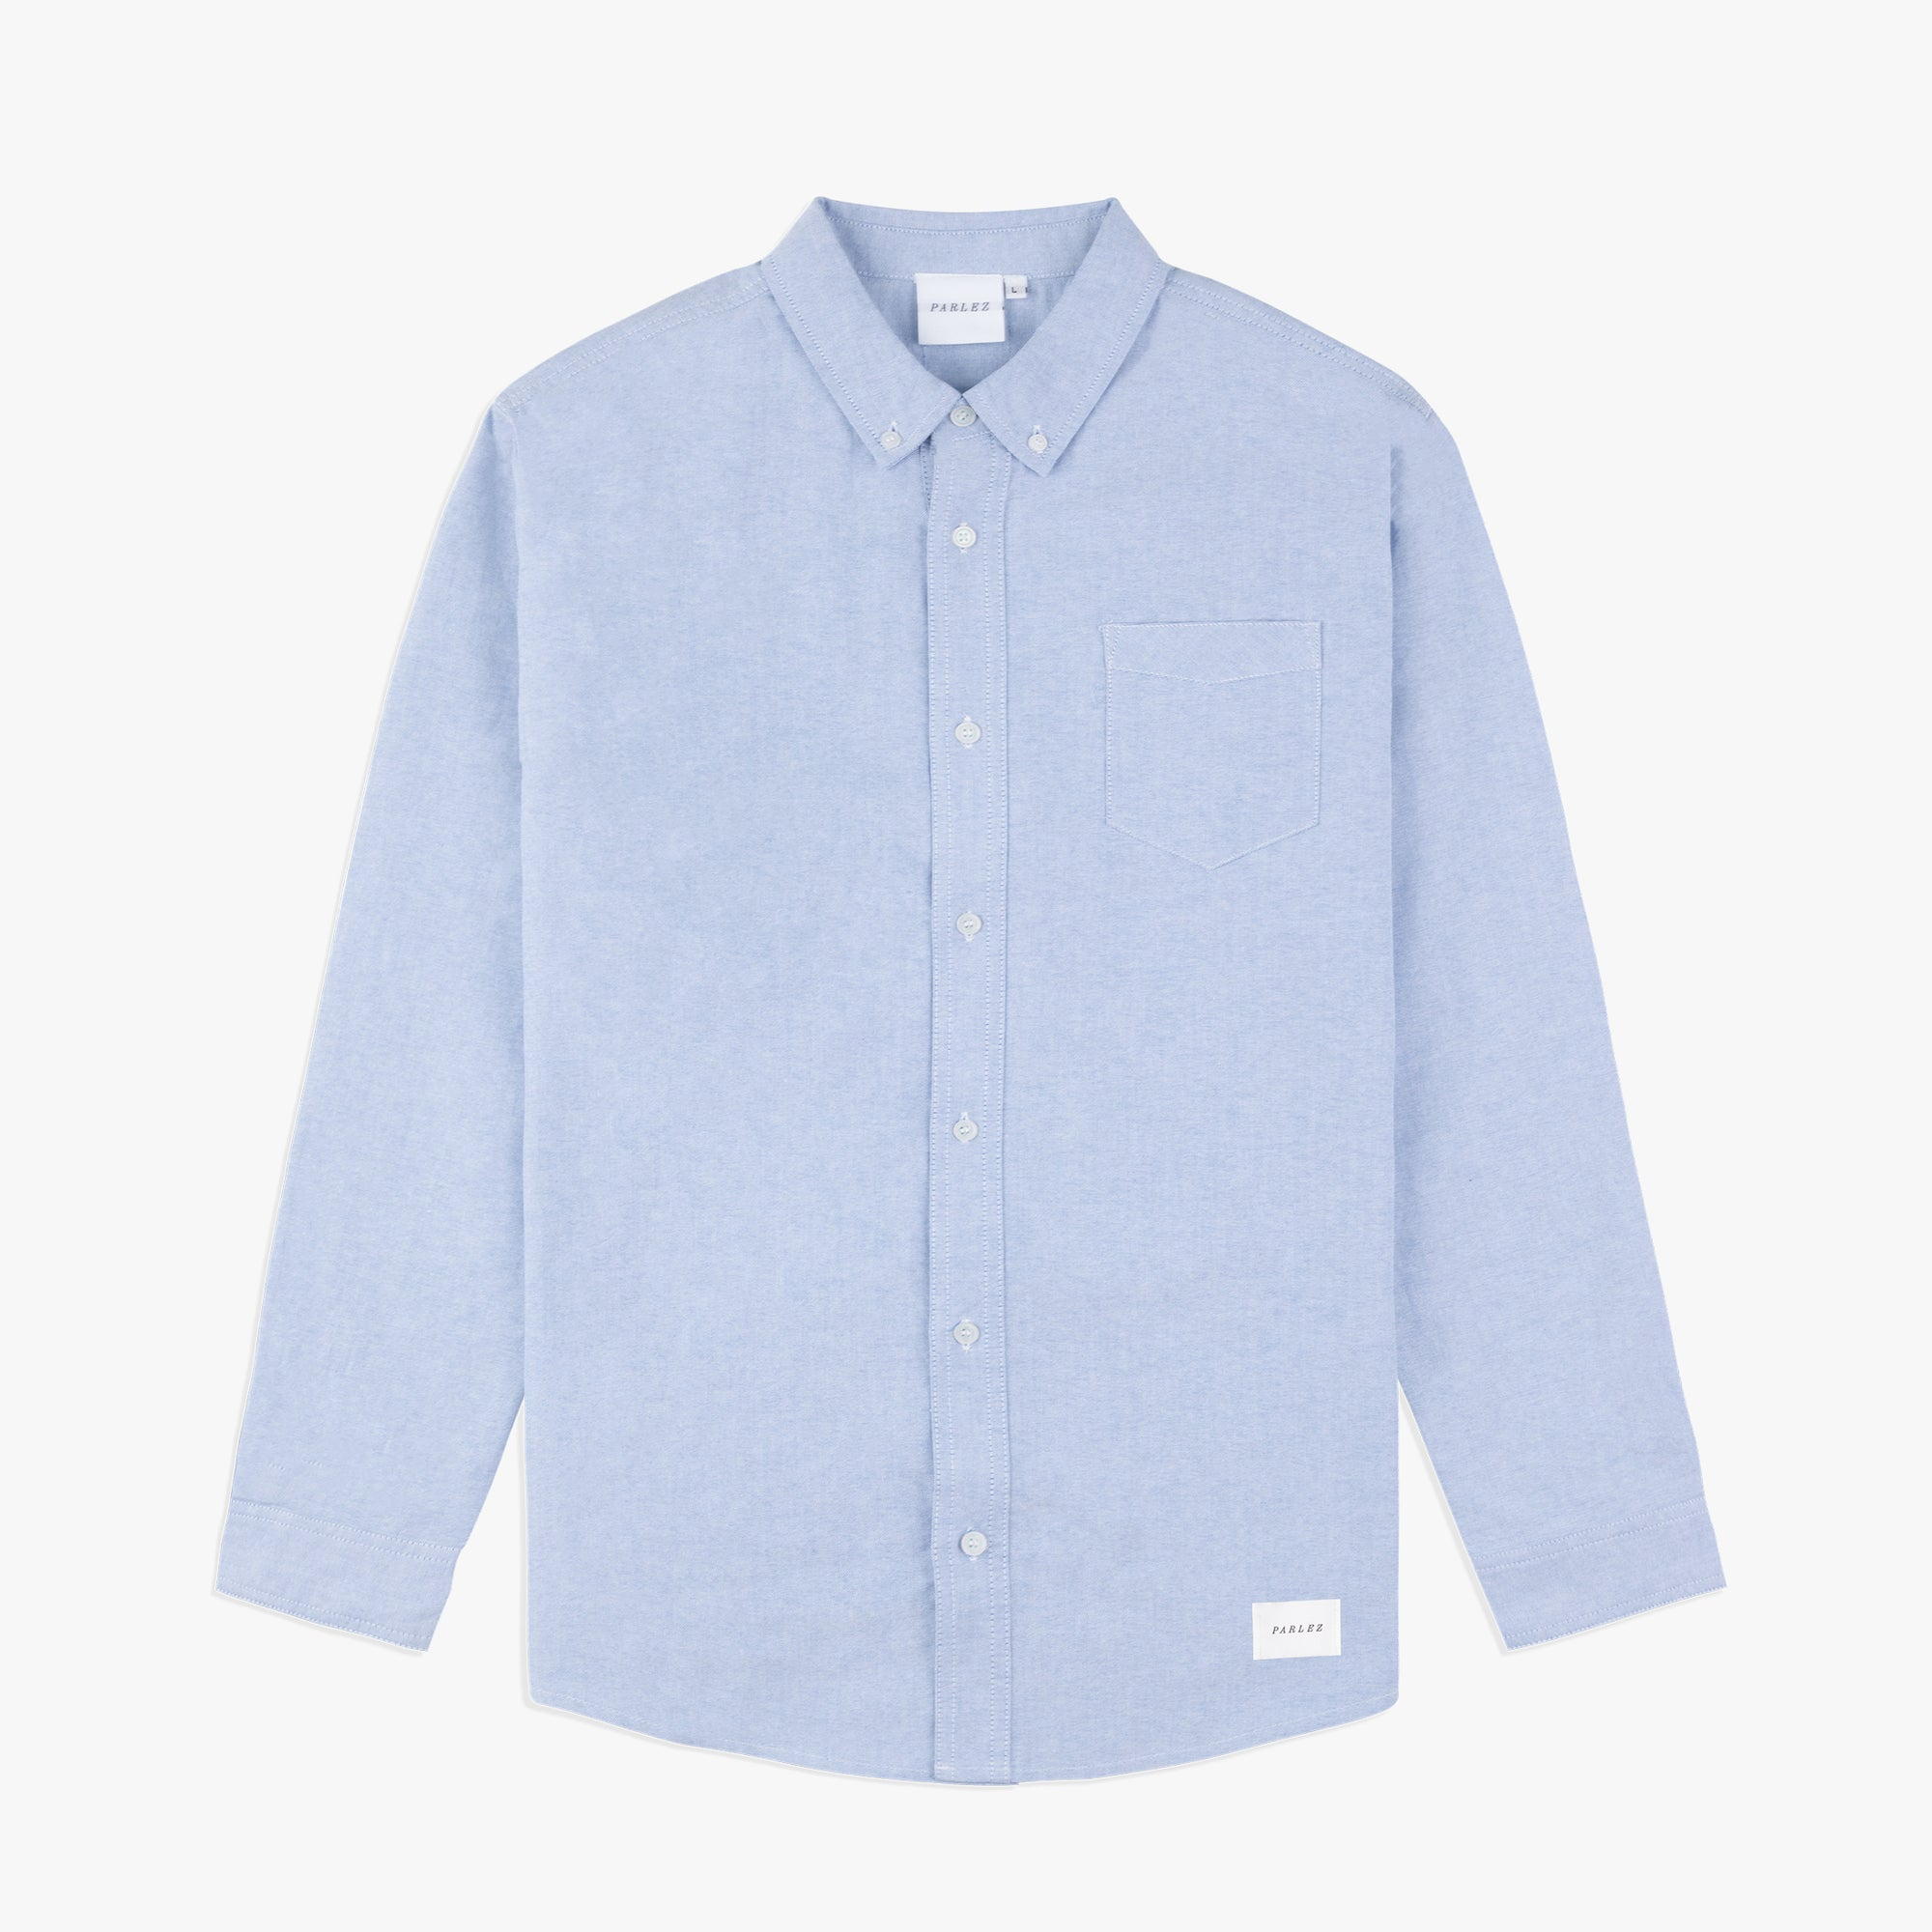 Sloop Long Sleeve Shirt Light Oxford